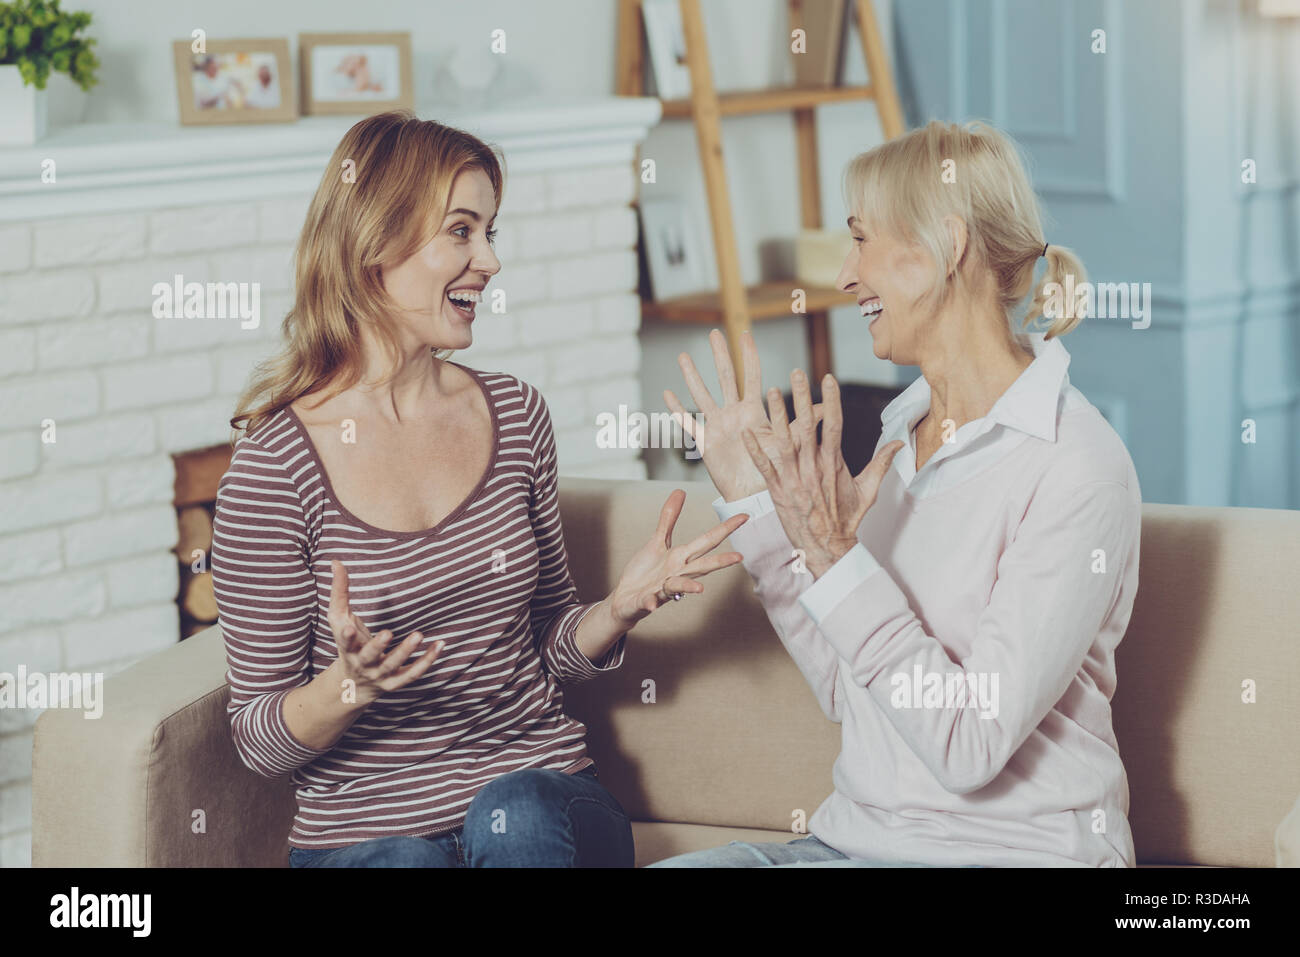 Uncontrollable joy. Cheerful senior mother with her happy young daughter feeling joy after getting very good news while resting on couch in living roo - Stock Image